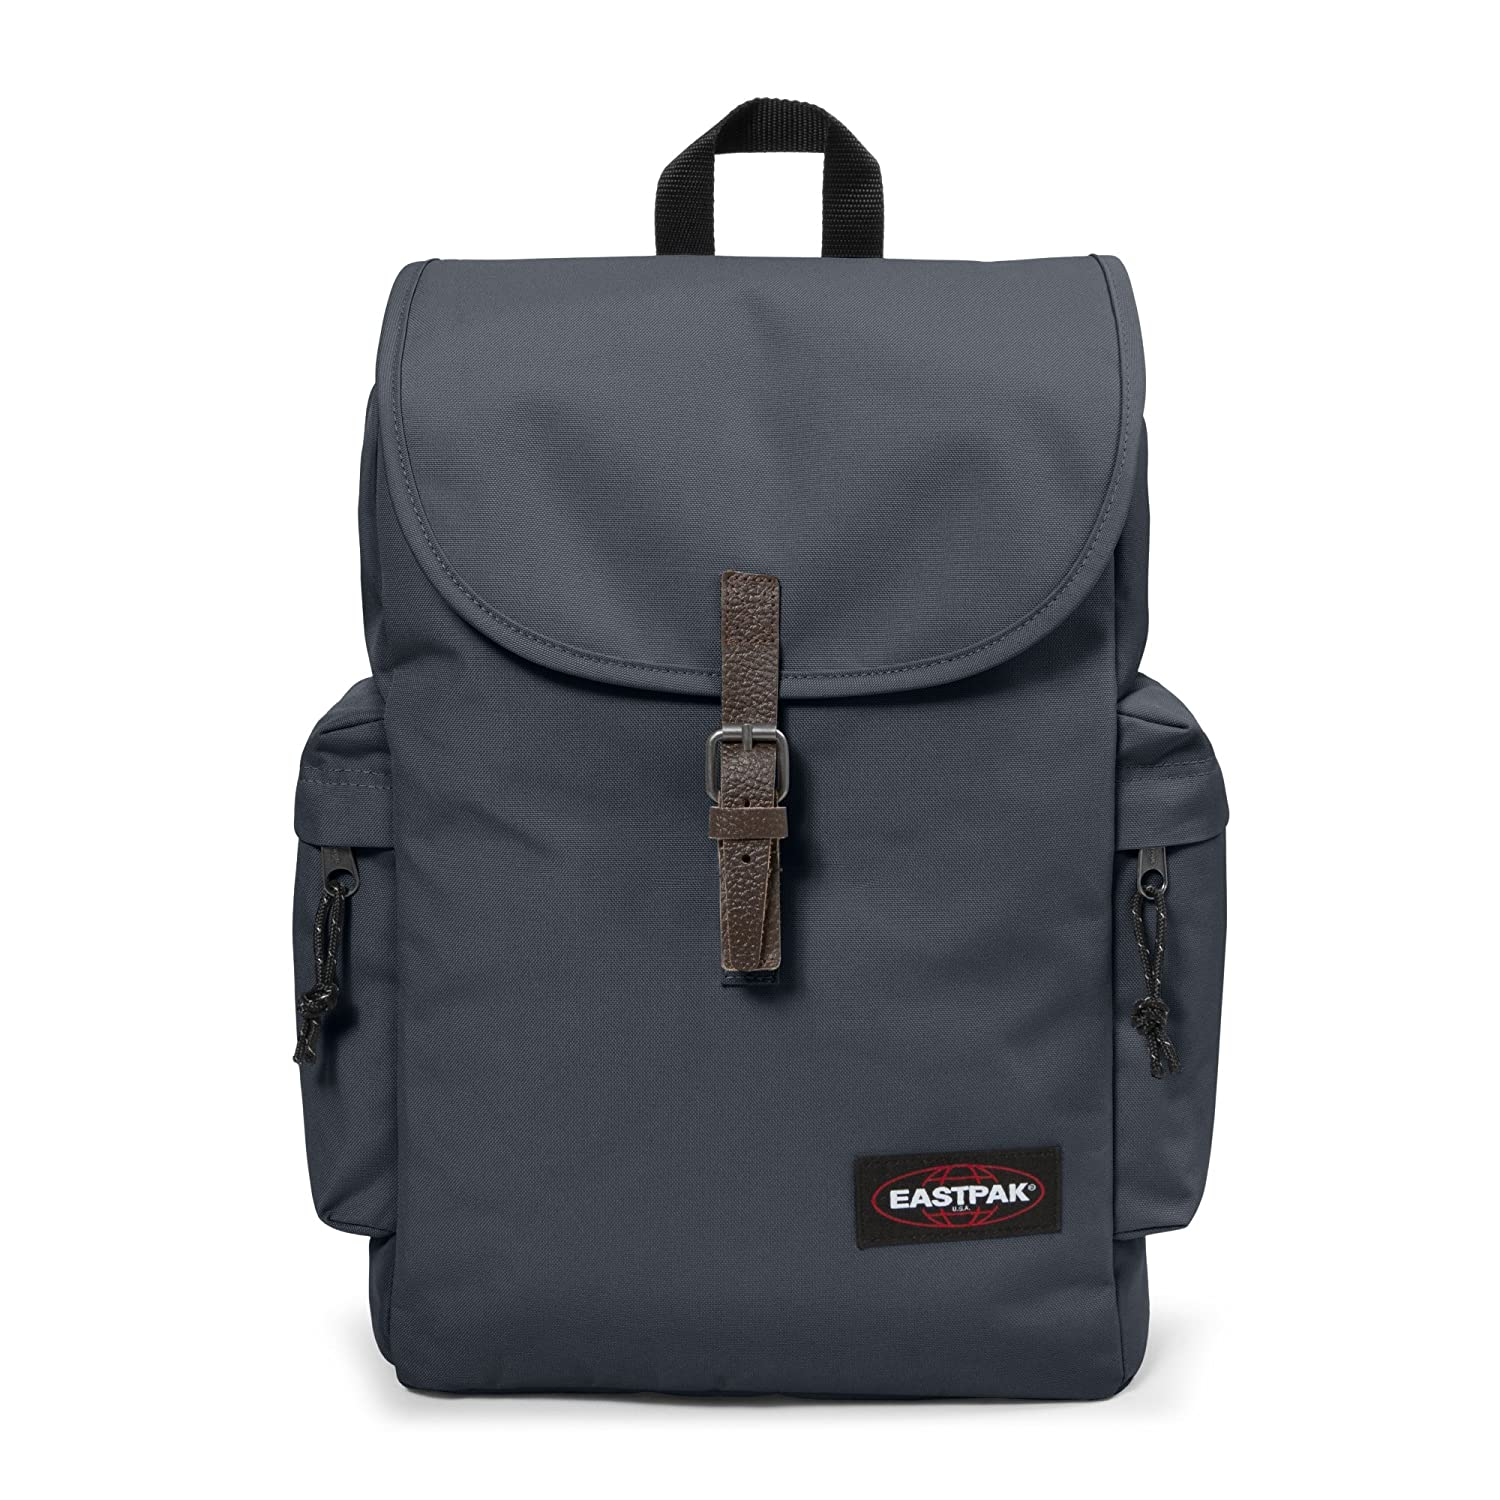 aa8175eb35d96 Amazon.com  Eastpak Austin Laptop Backpack One Size Midnight  Computers    Accessories